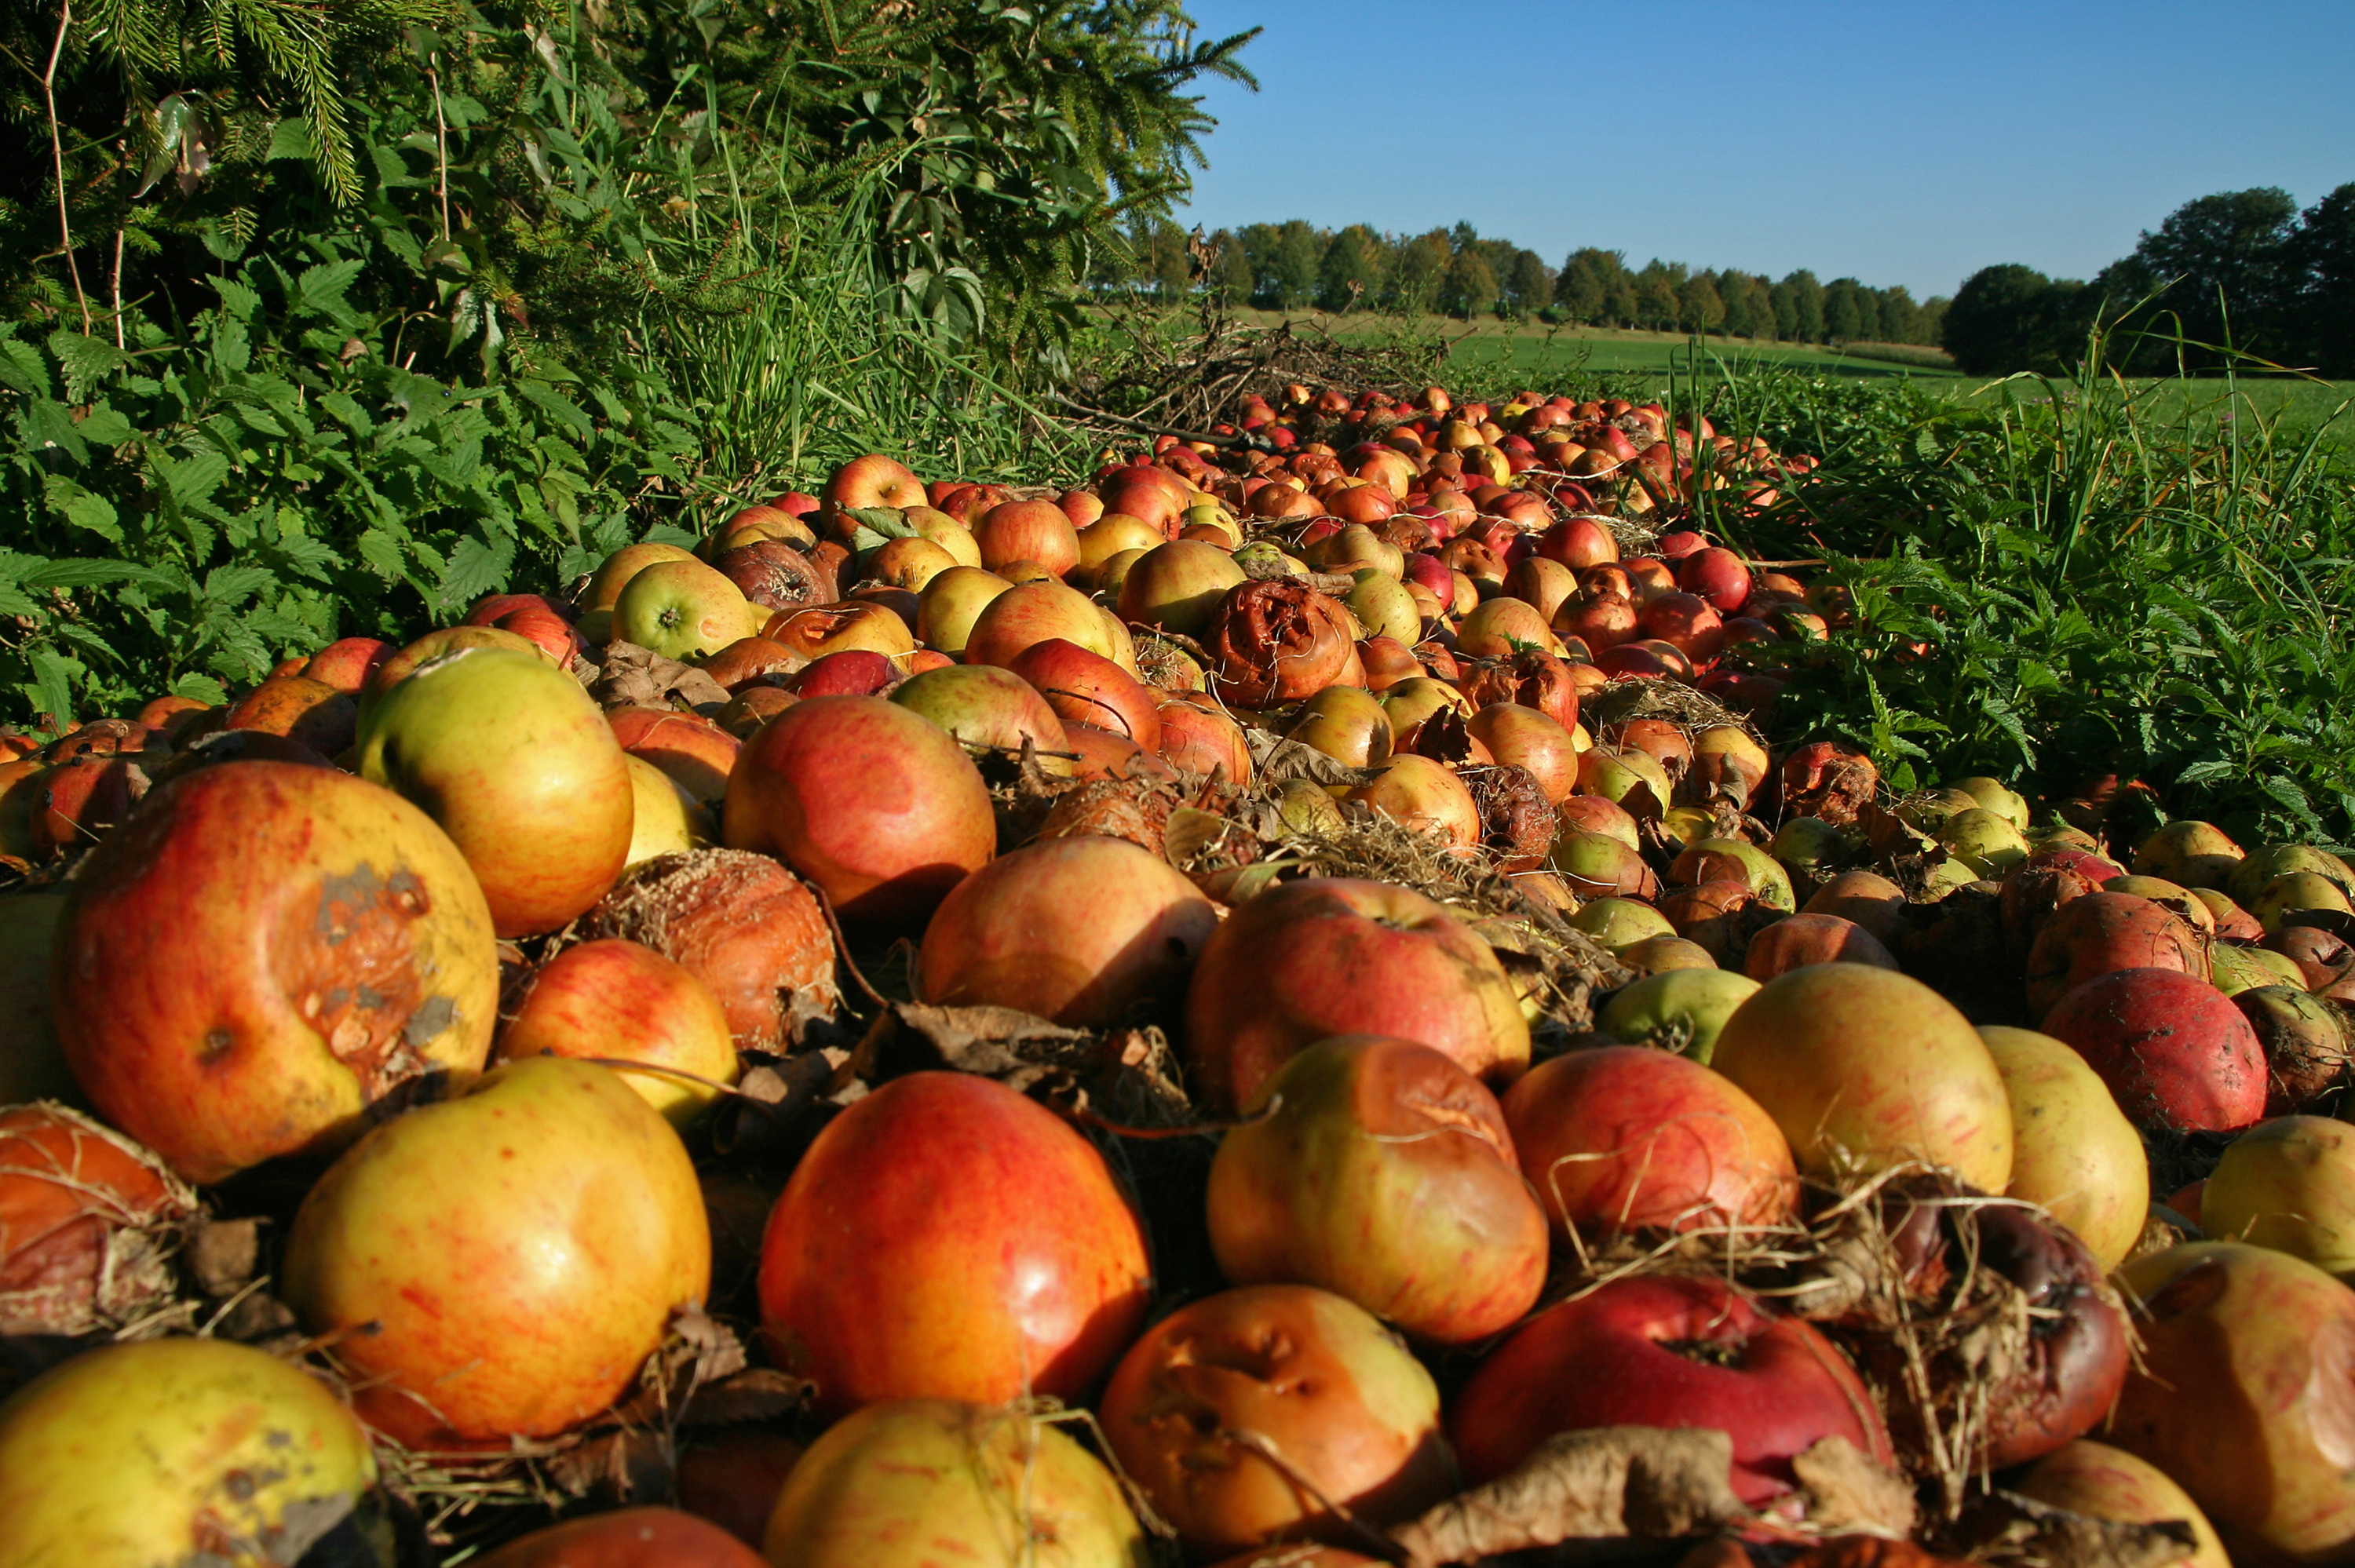 The government's first ever national target to reduce food waste will encourage farmers to donate more of their imperfect produce to the hungry. iStockphoto